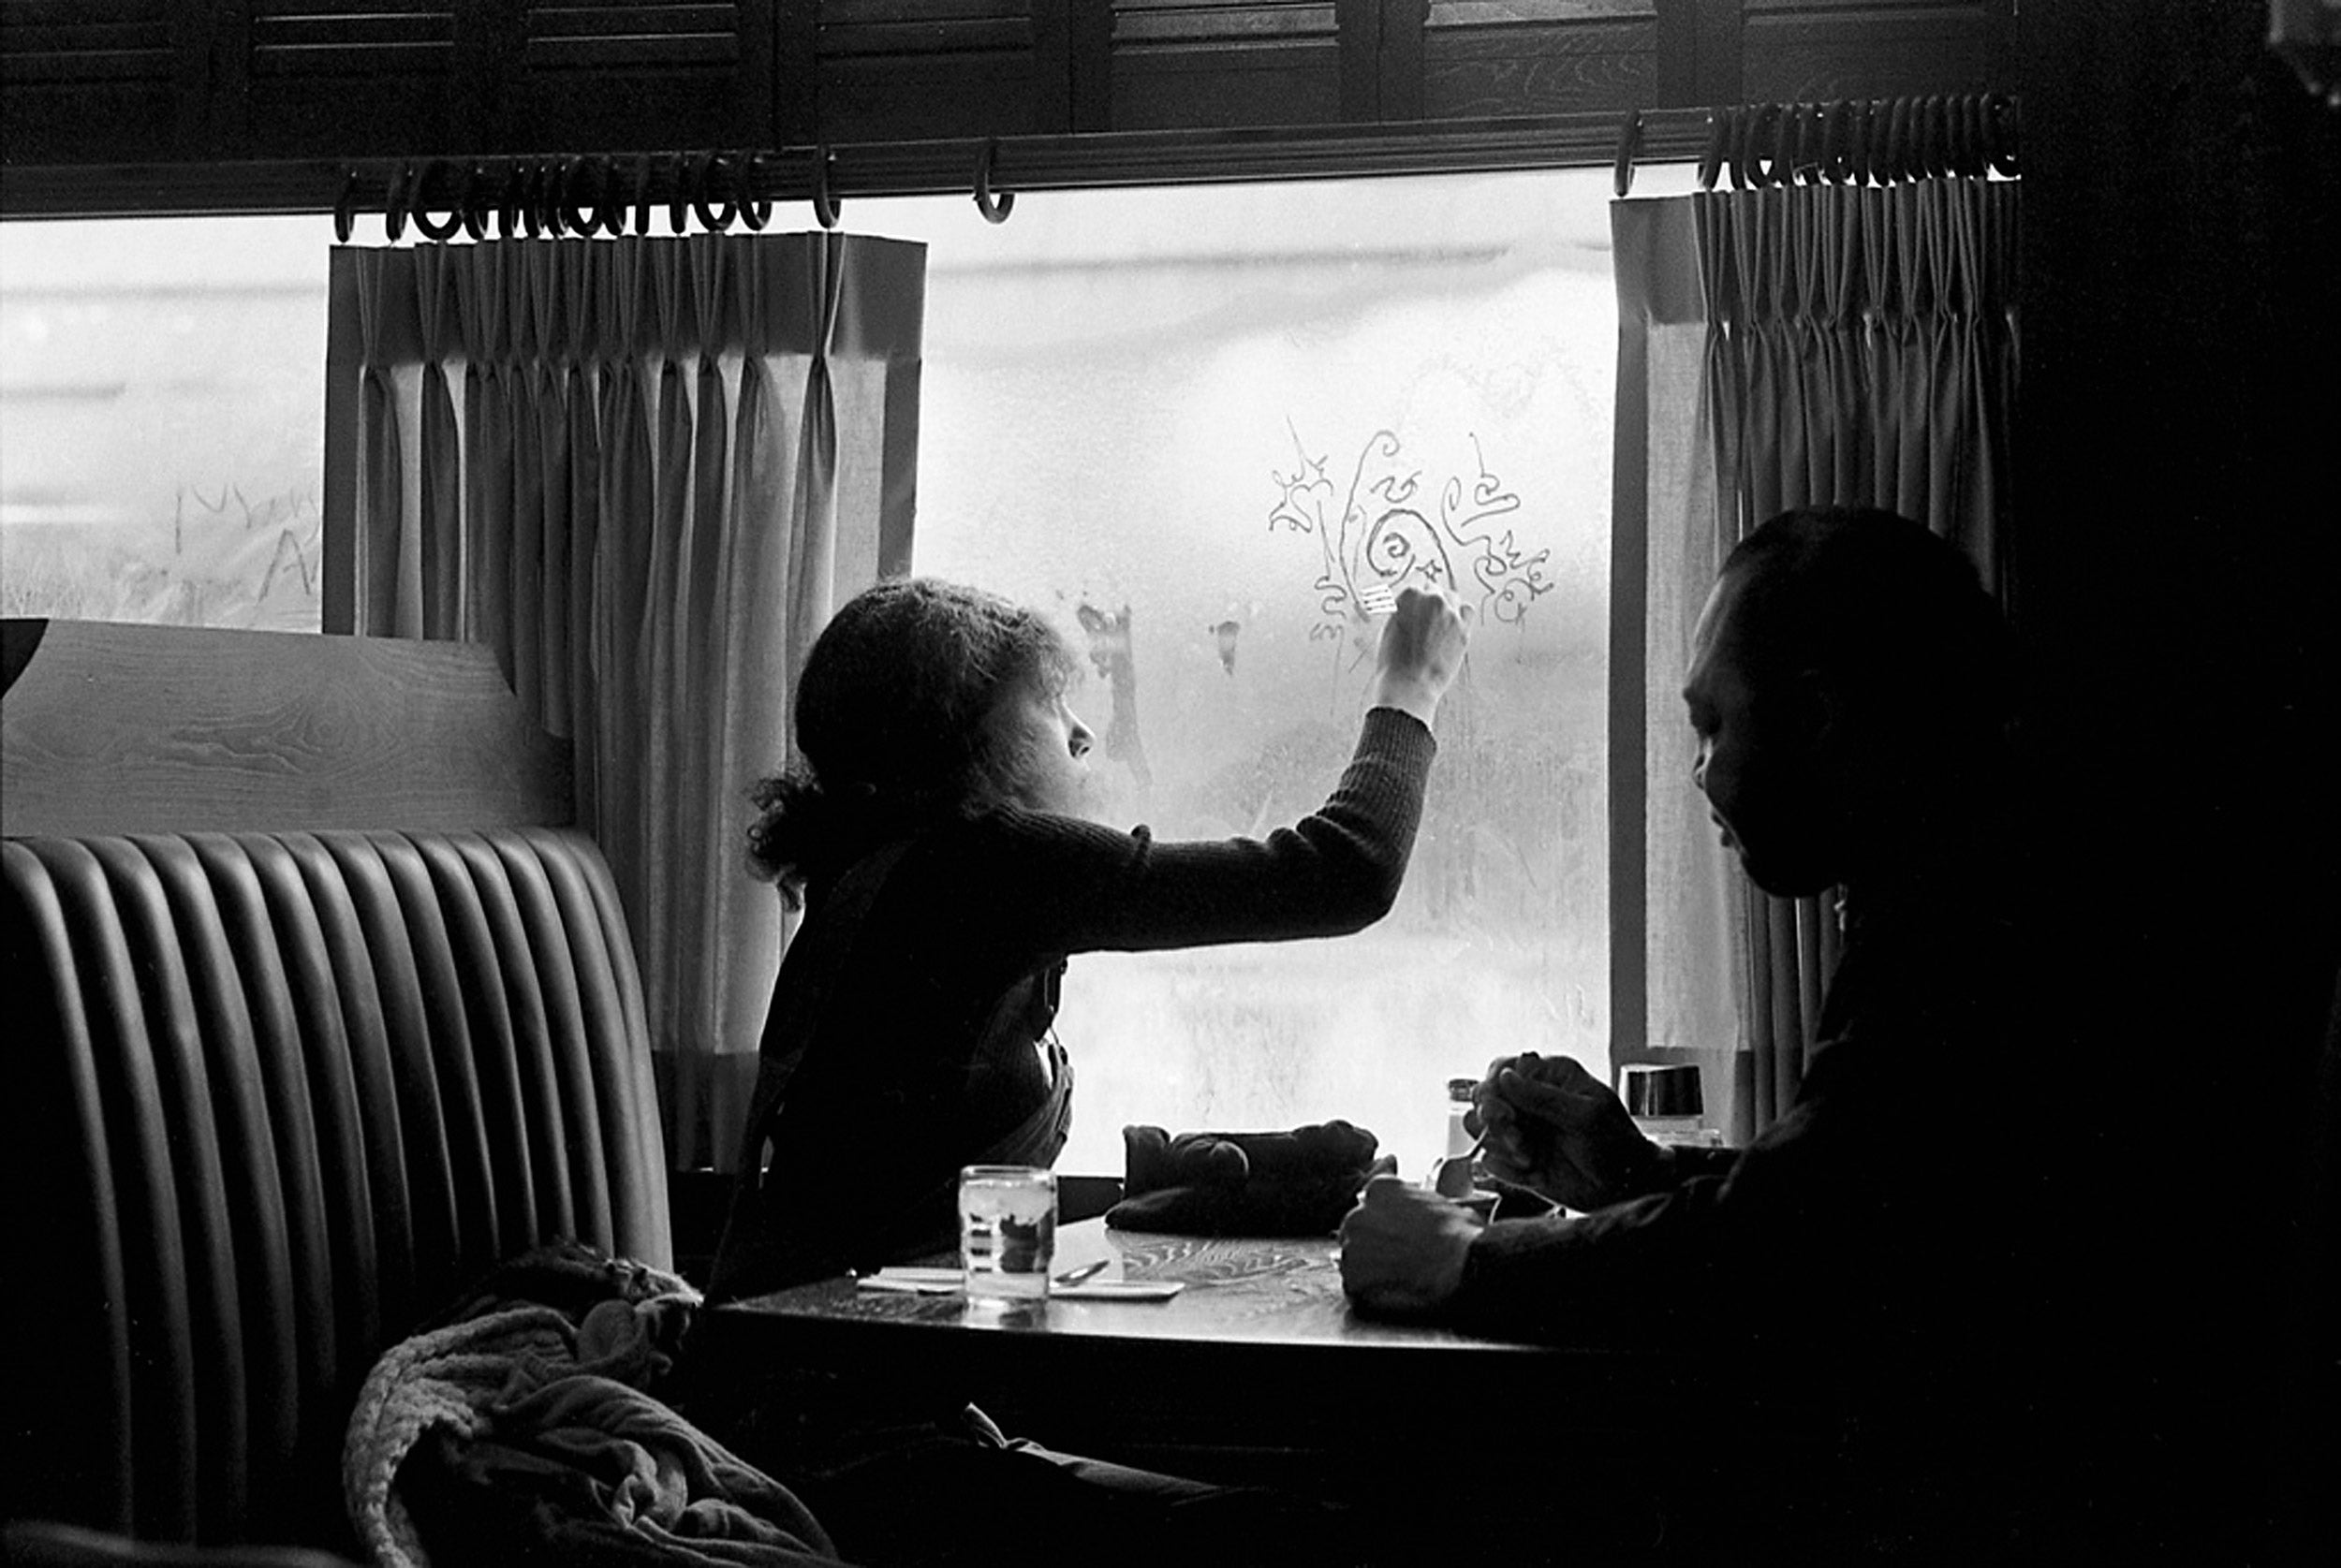 Woman in restaurant booth doodles in window fog, 1969.